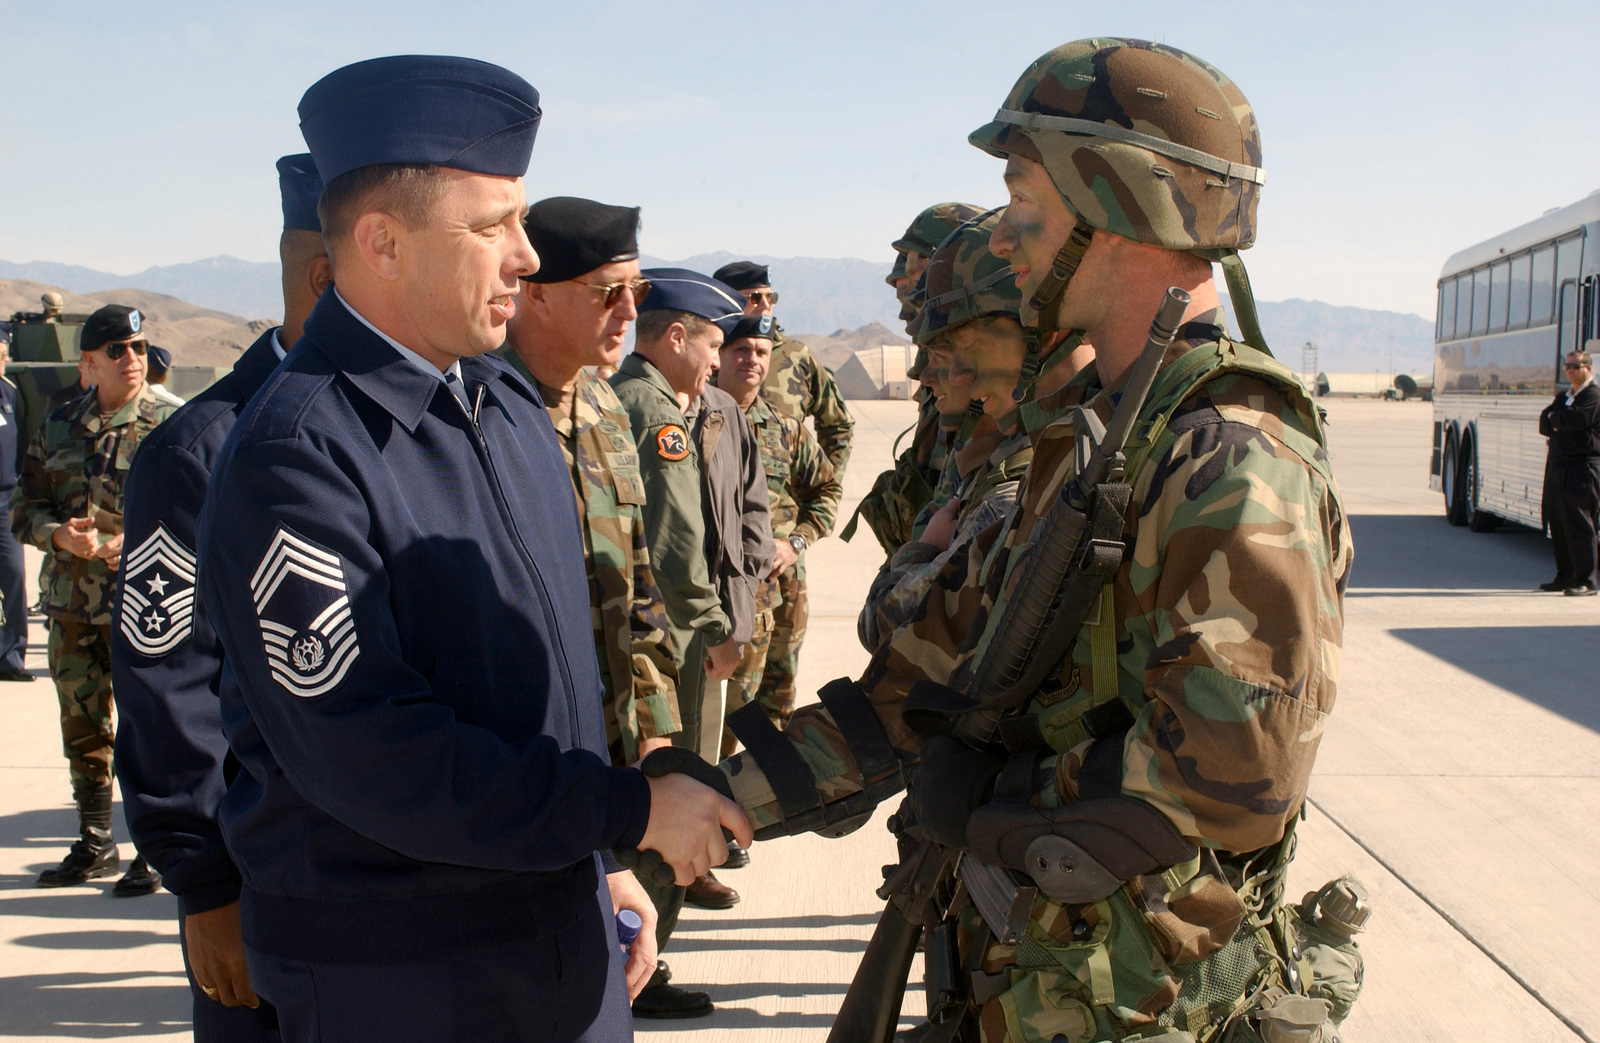 CHIEF MASTER Sergeant of the Air Force (CMSAF) Frederick J. Finch congratulates members of the 820th Security Forces Squadron (SFS) after their Paradrop demonstration at Point Bravo, during Capstone firepower demonstration at Indian Springs Air Force Auxiliary Air Field. It is a quarterly demonstration of aerial firepower and how it can be applied to the battlefield